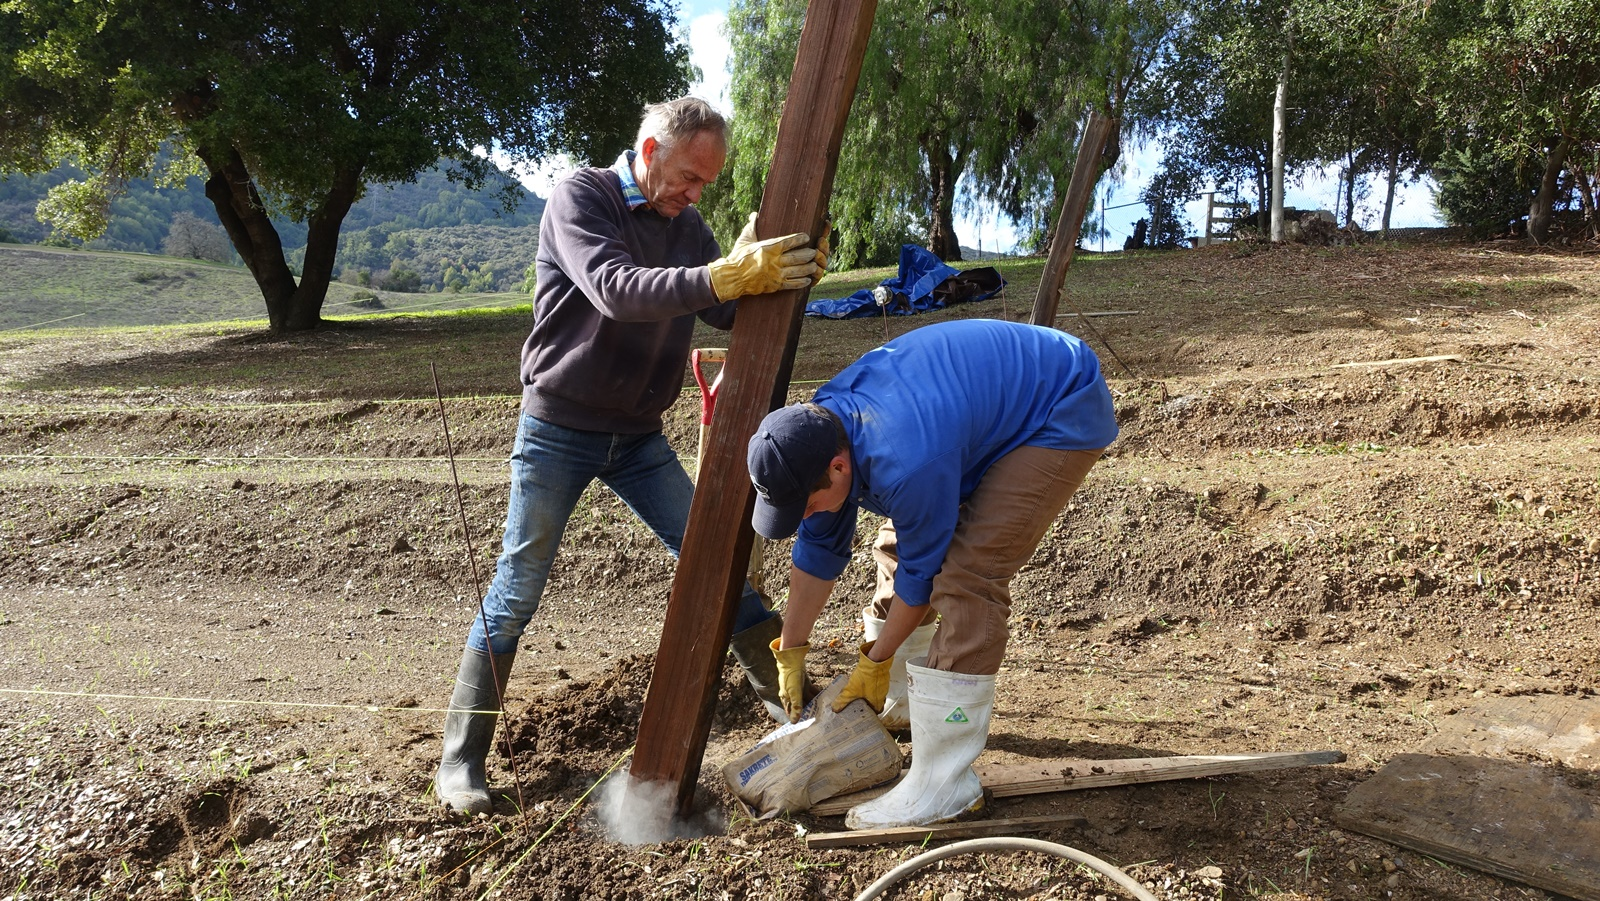 5. Cementing the endposts